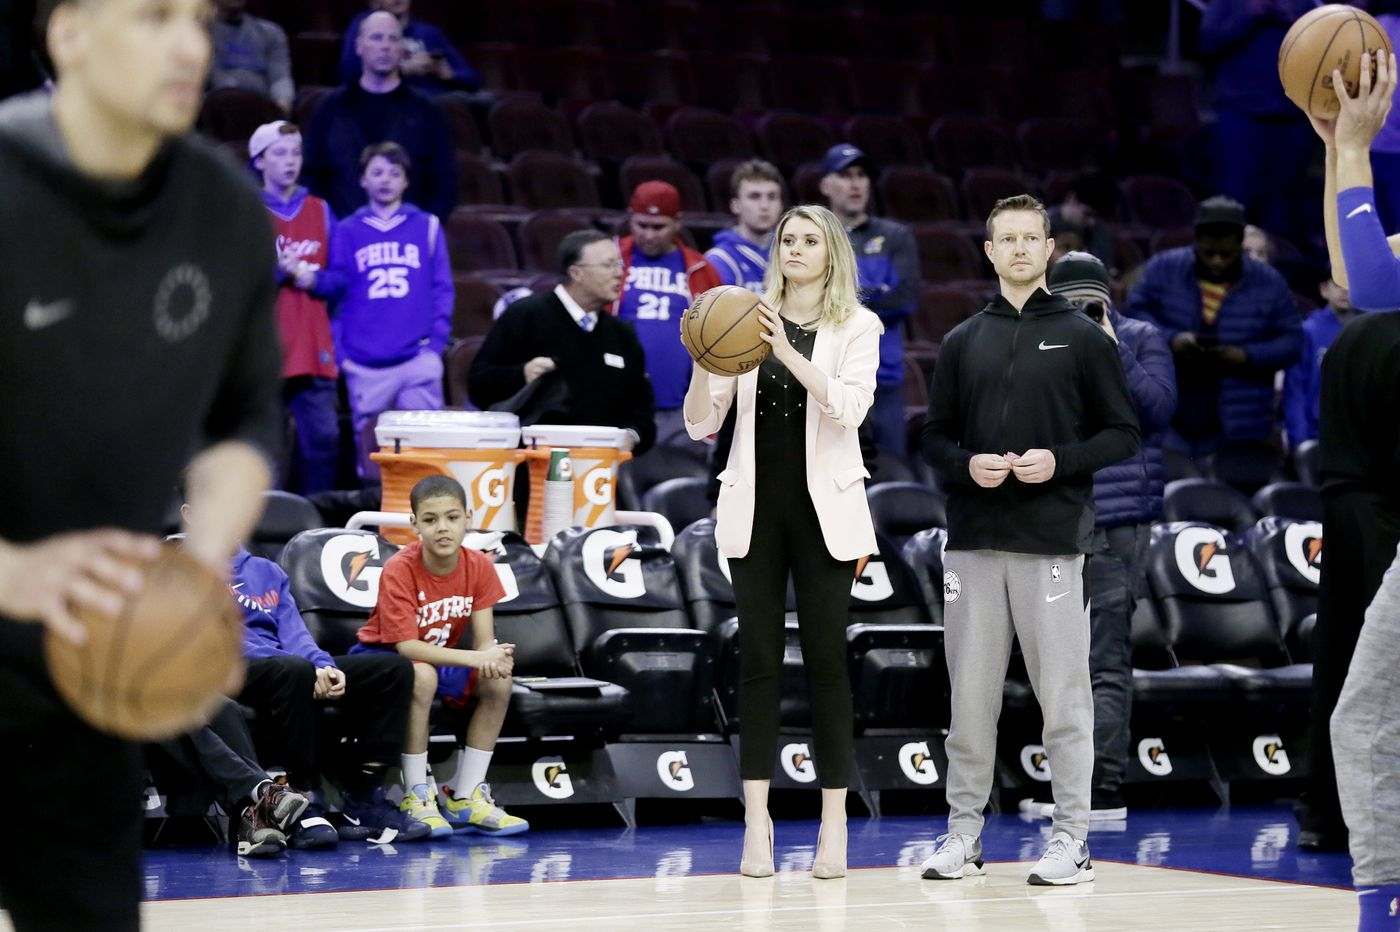 Dr. Annelie Schmittel is the fearless and empathetic VP the Sixers — and little girls with dreams — turn to